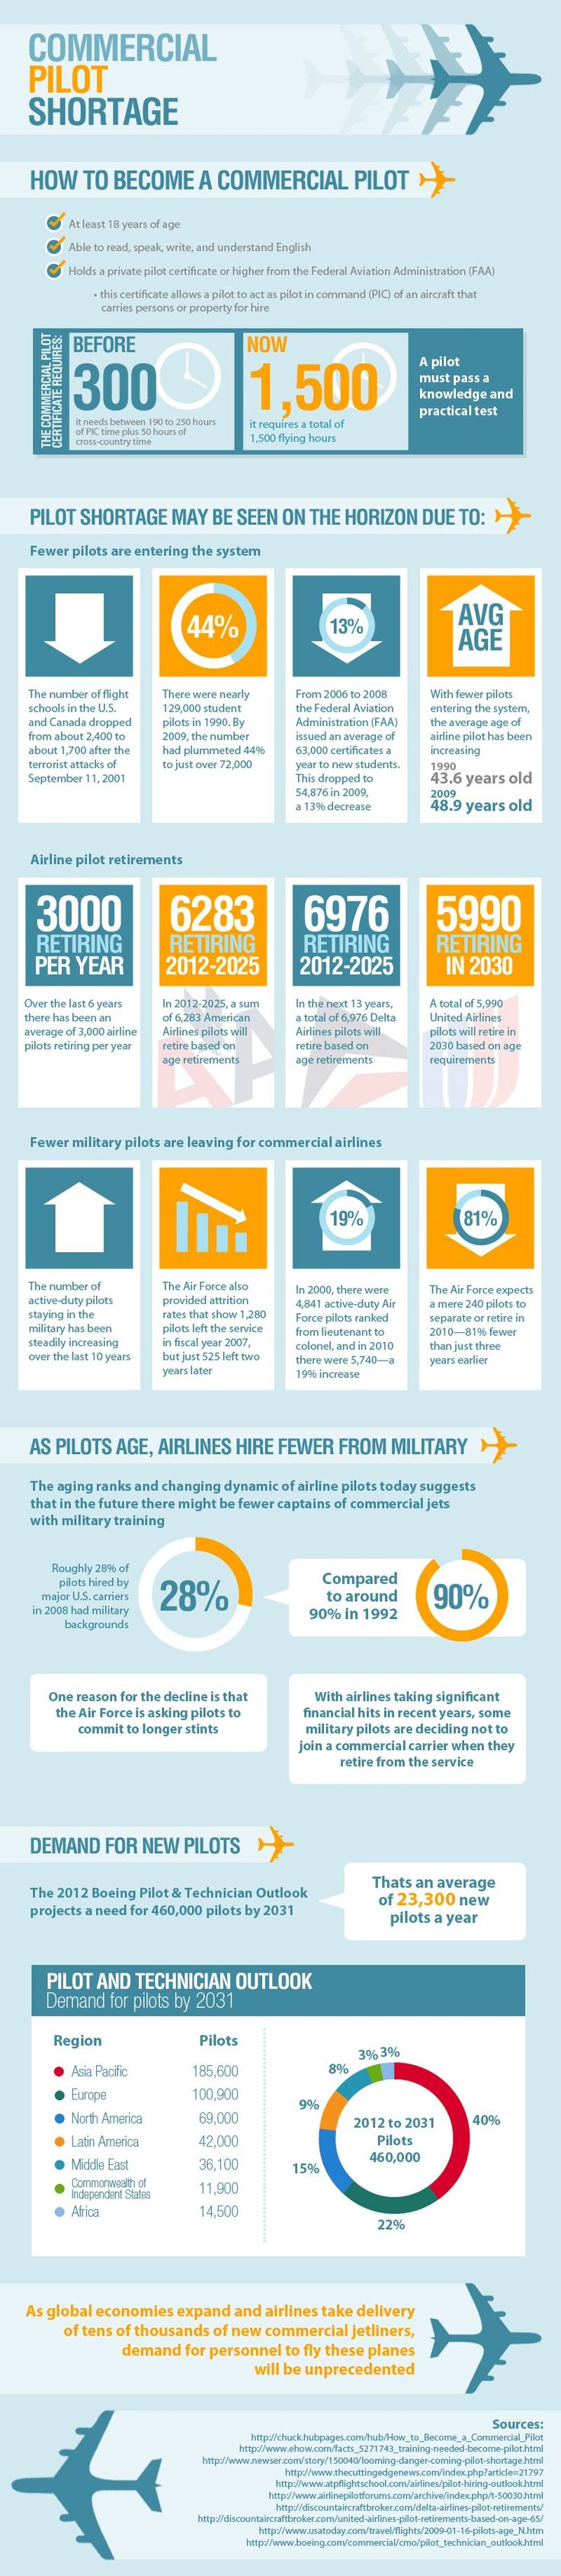 With a commercial pilot shortage on the horizon, what new opportunities lay ahead for the next generation of pilots? #infographic